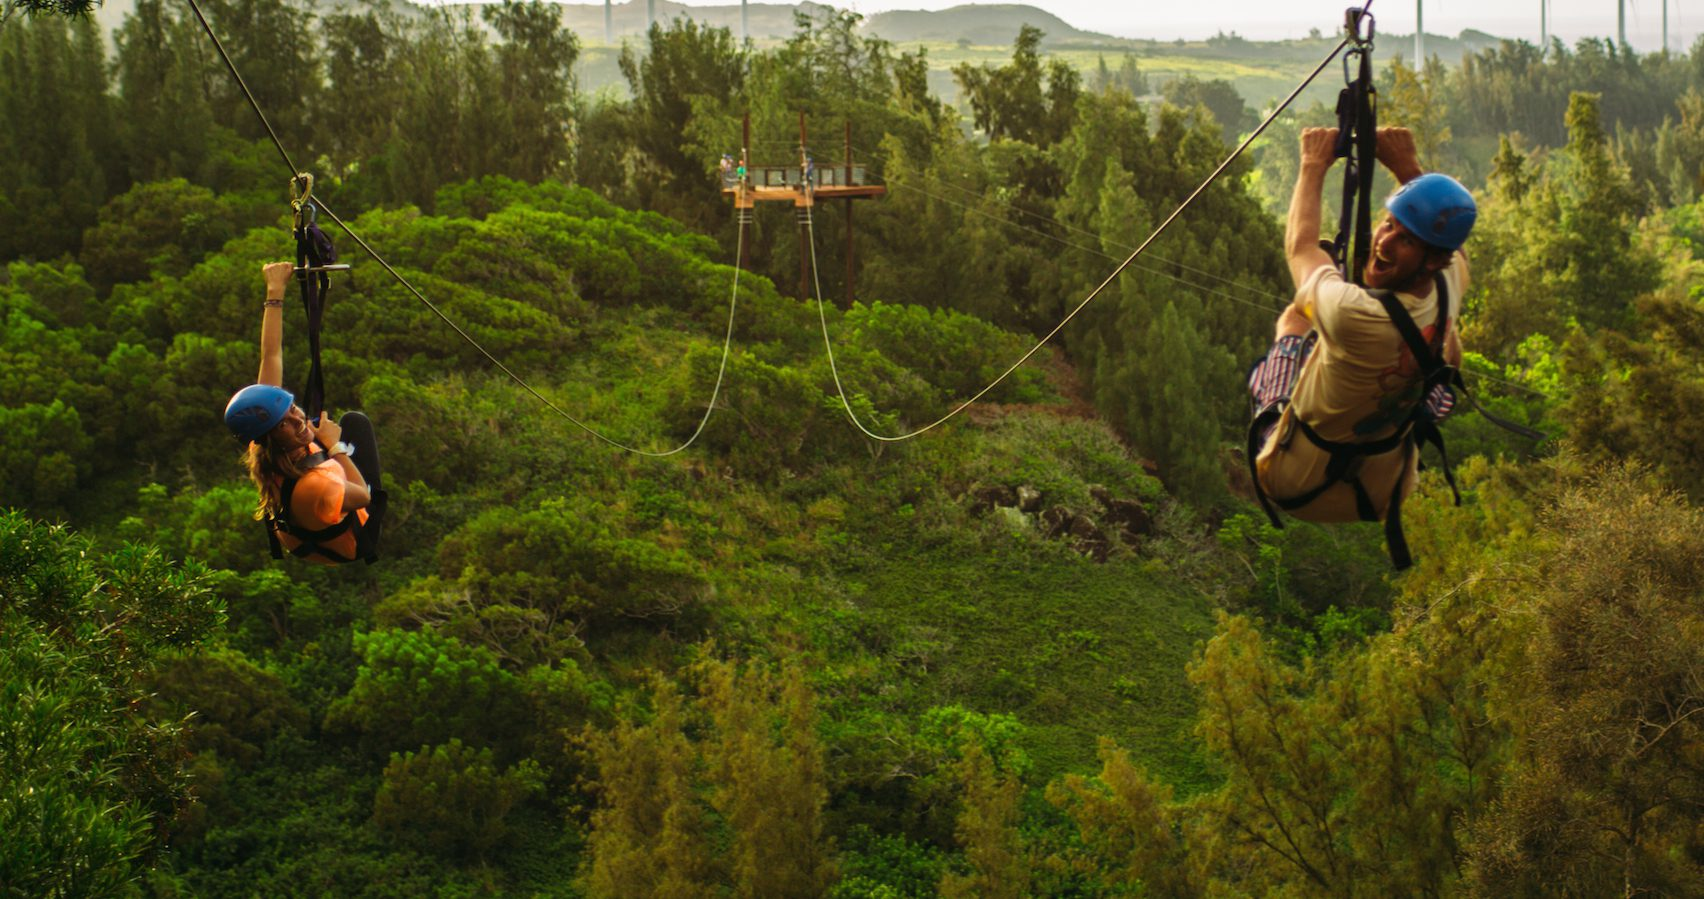 Top 4 Reasons to Go Ziplining in Oahu Hawaii During Your Vacation